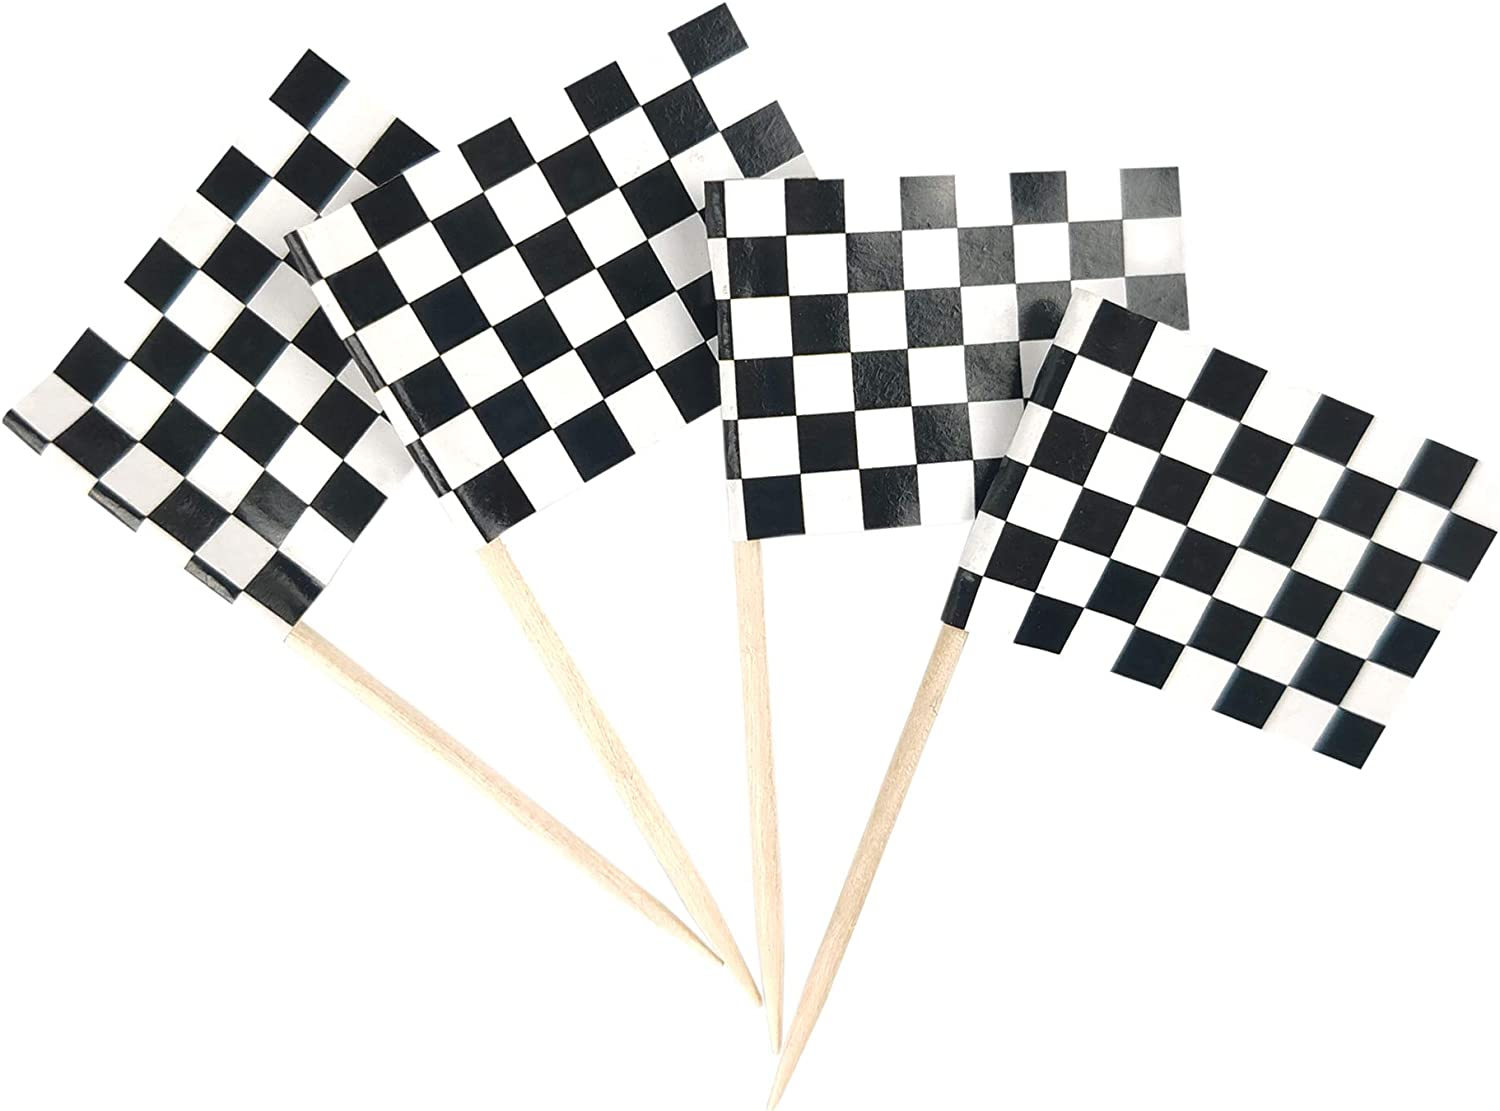 JBCD 100 Pcs Racing Flag Toothpicks Black White Checkered Flags Cupcake Toppers Decorations, Cocktail Toothpick Flag Cake Topper Picks Mini Small Flag Cupcake Pick Sticks